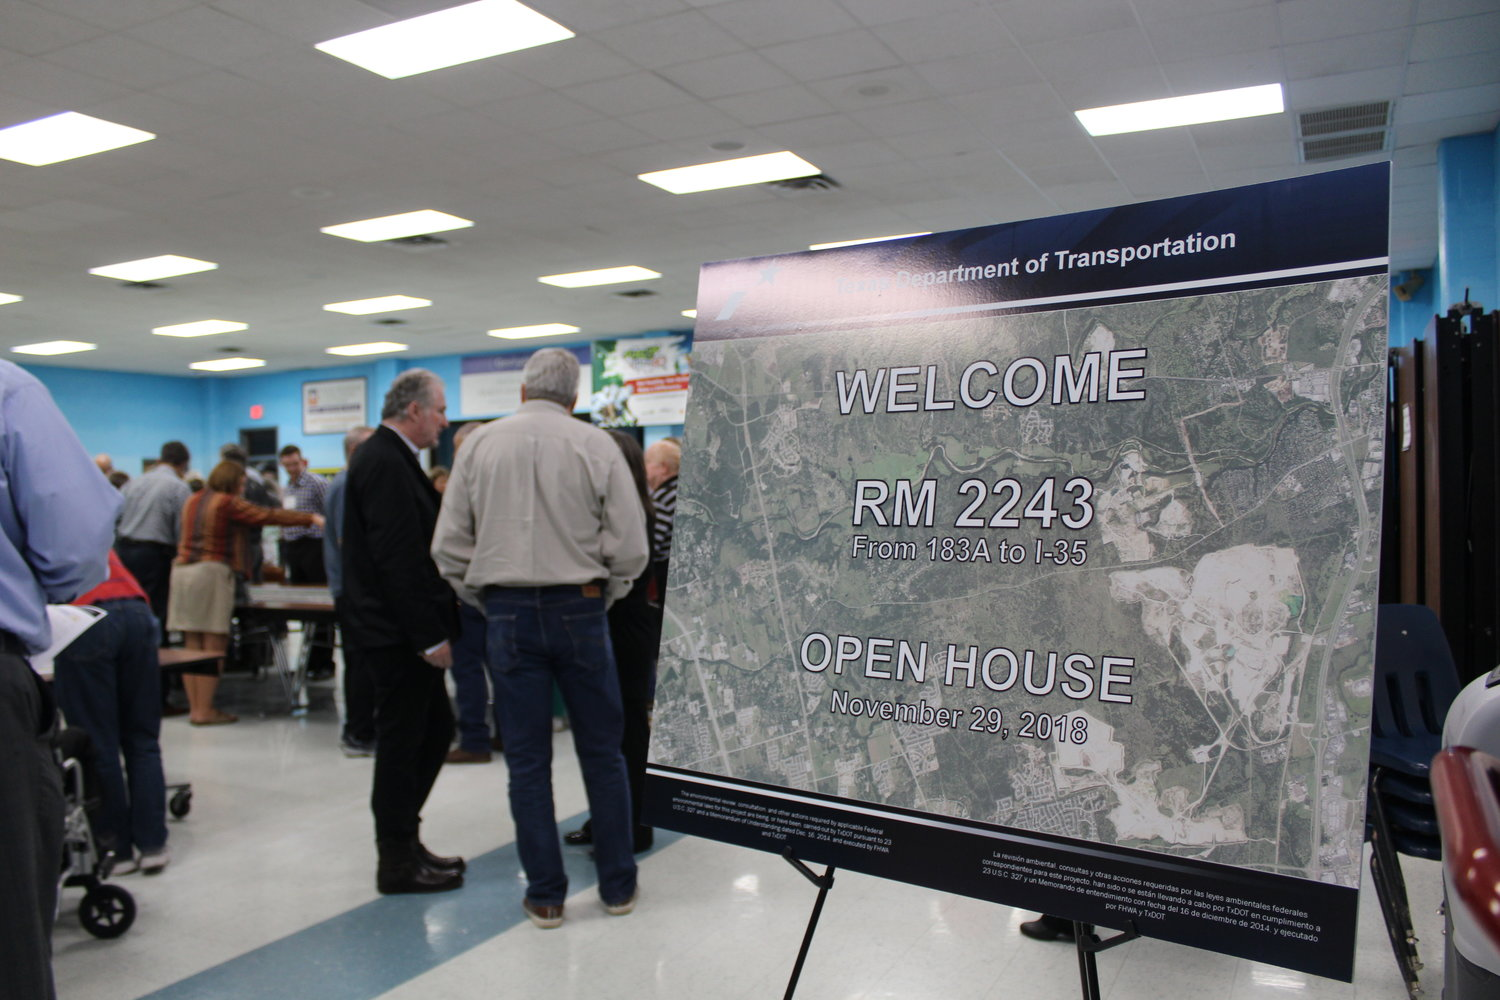 More than 100 residents attended a TxDOT open house on future plans for RM 2243 on Nov. 29.